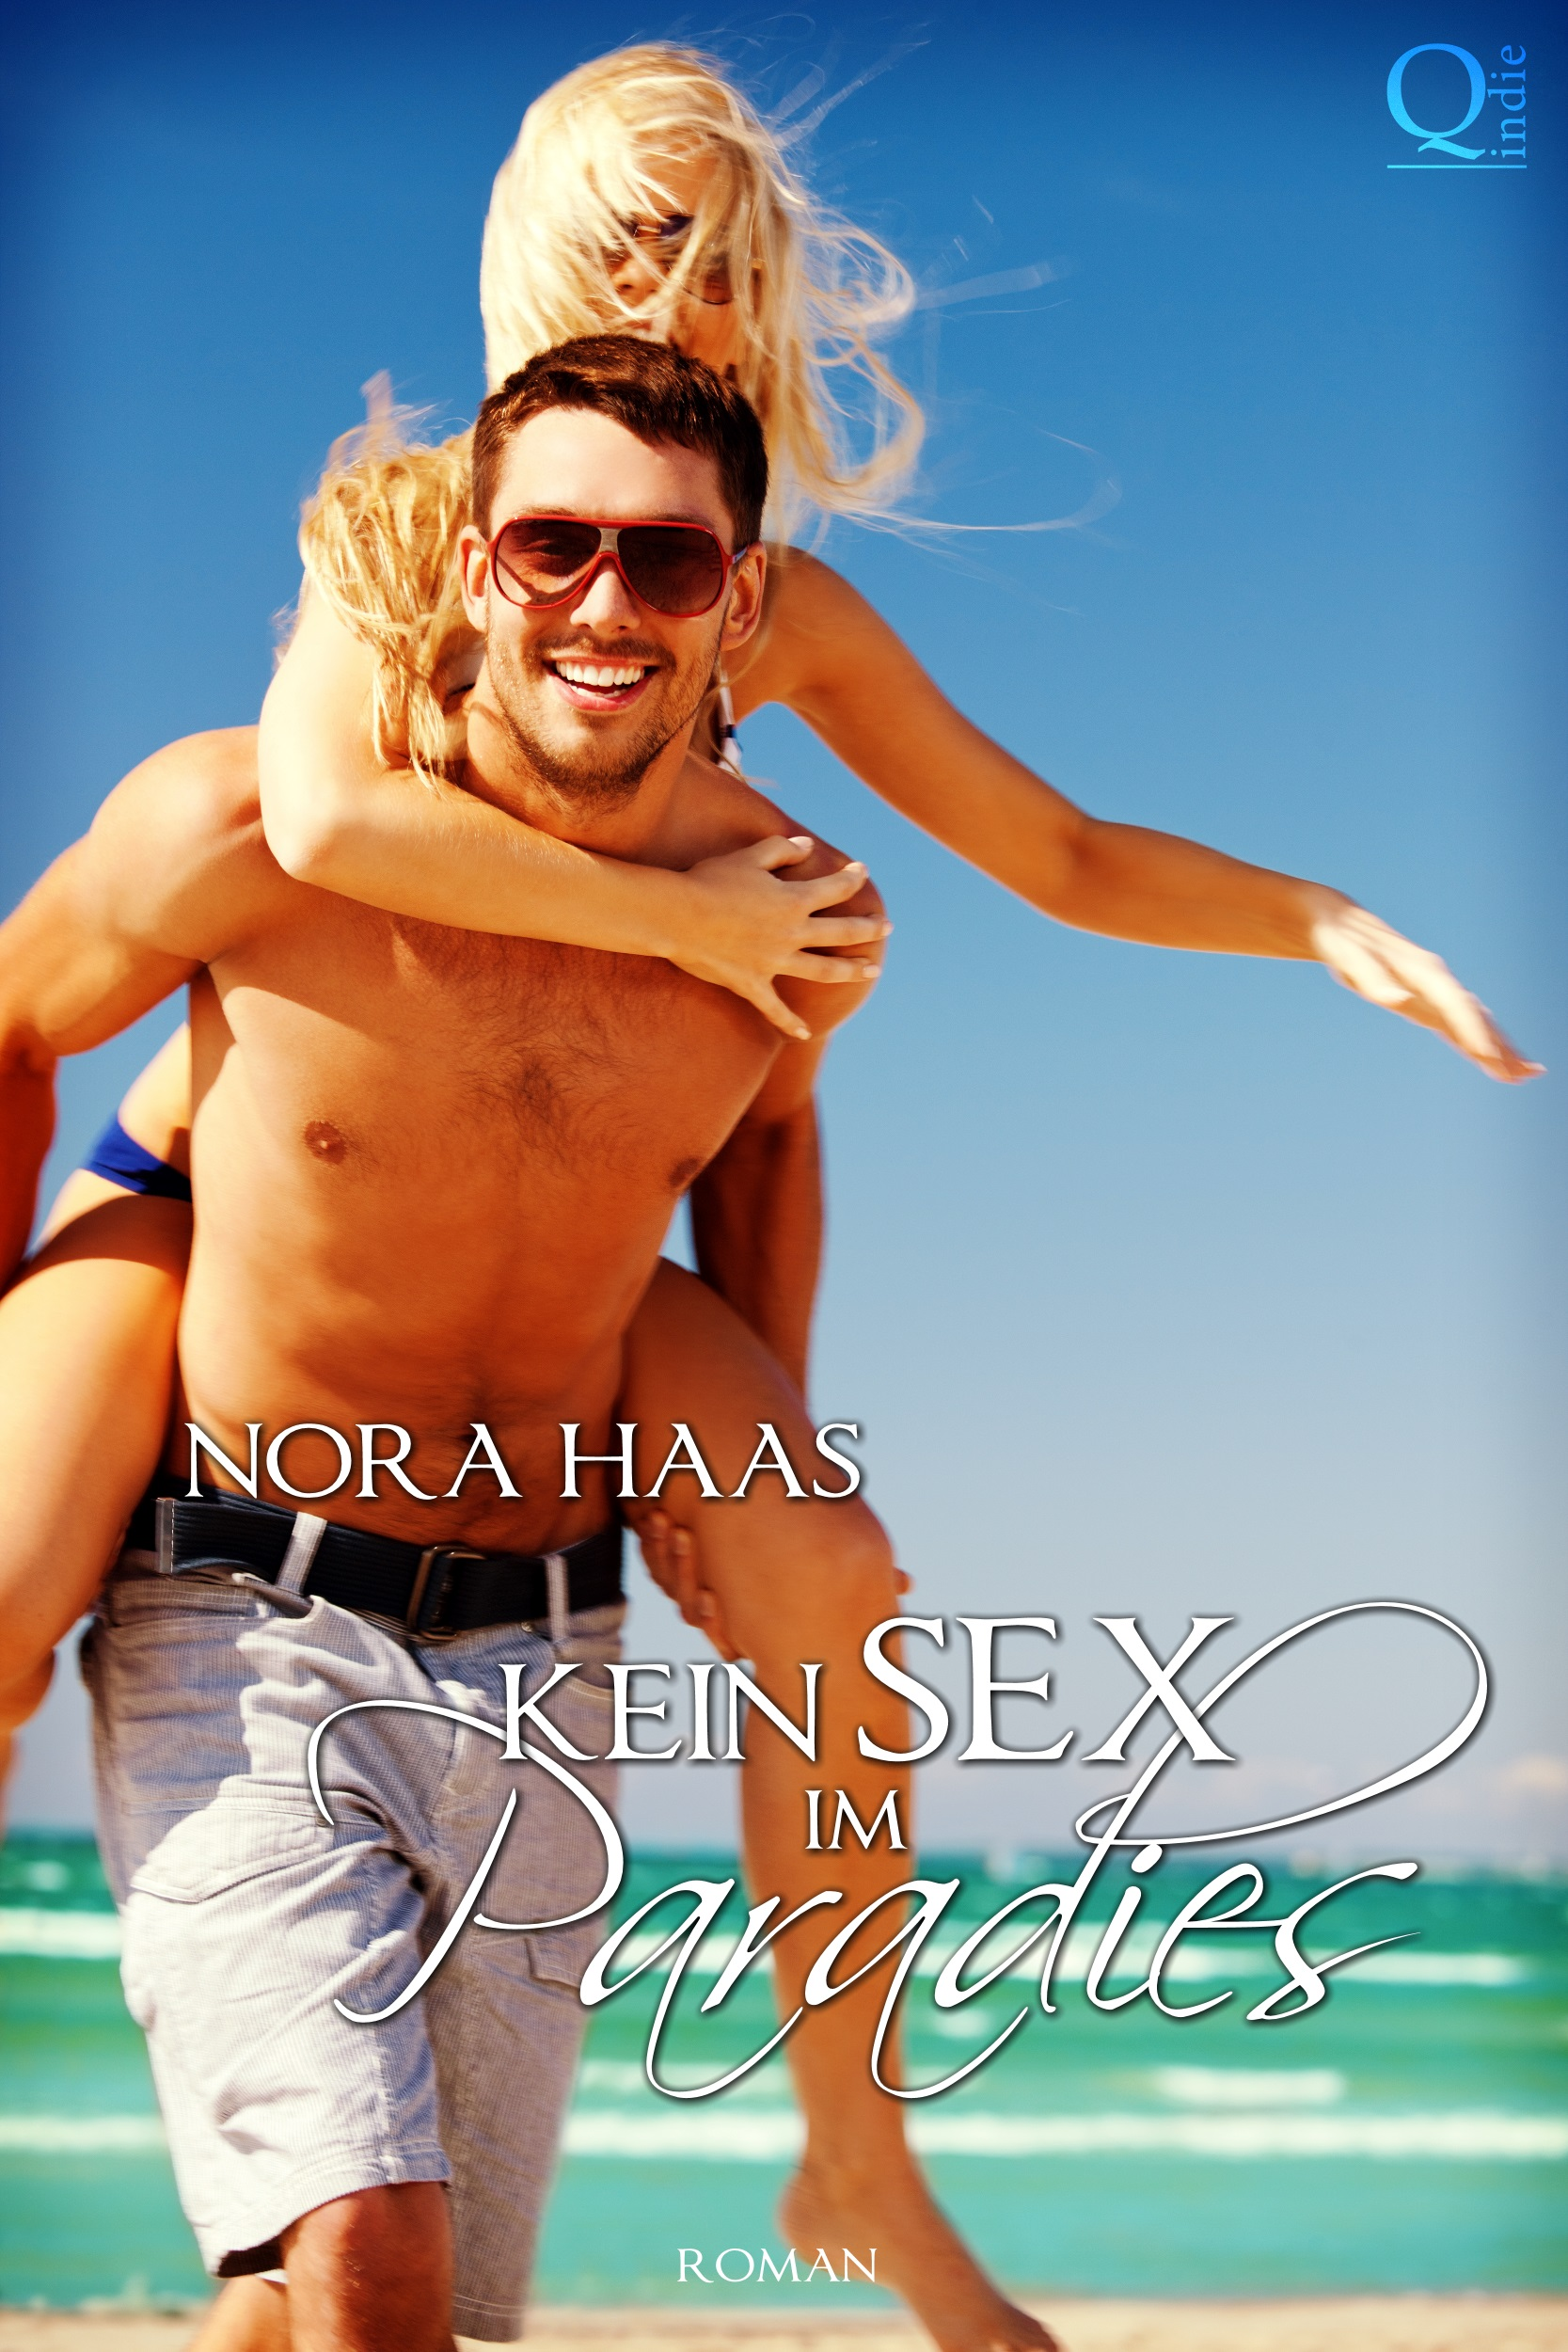 http://www.qindie.de/wp-content/uploads/2015/04/Nora-Haas-Kein-Sex-im-Paradies-eBook-Cover-final-Syda-Productions-Fotolia.jpg